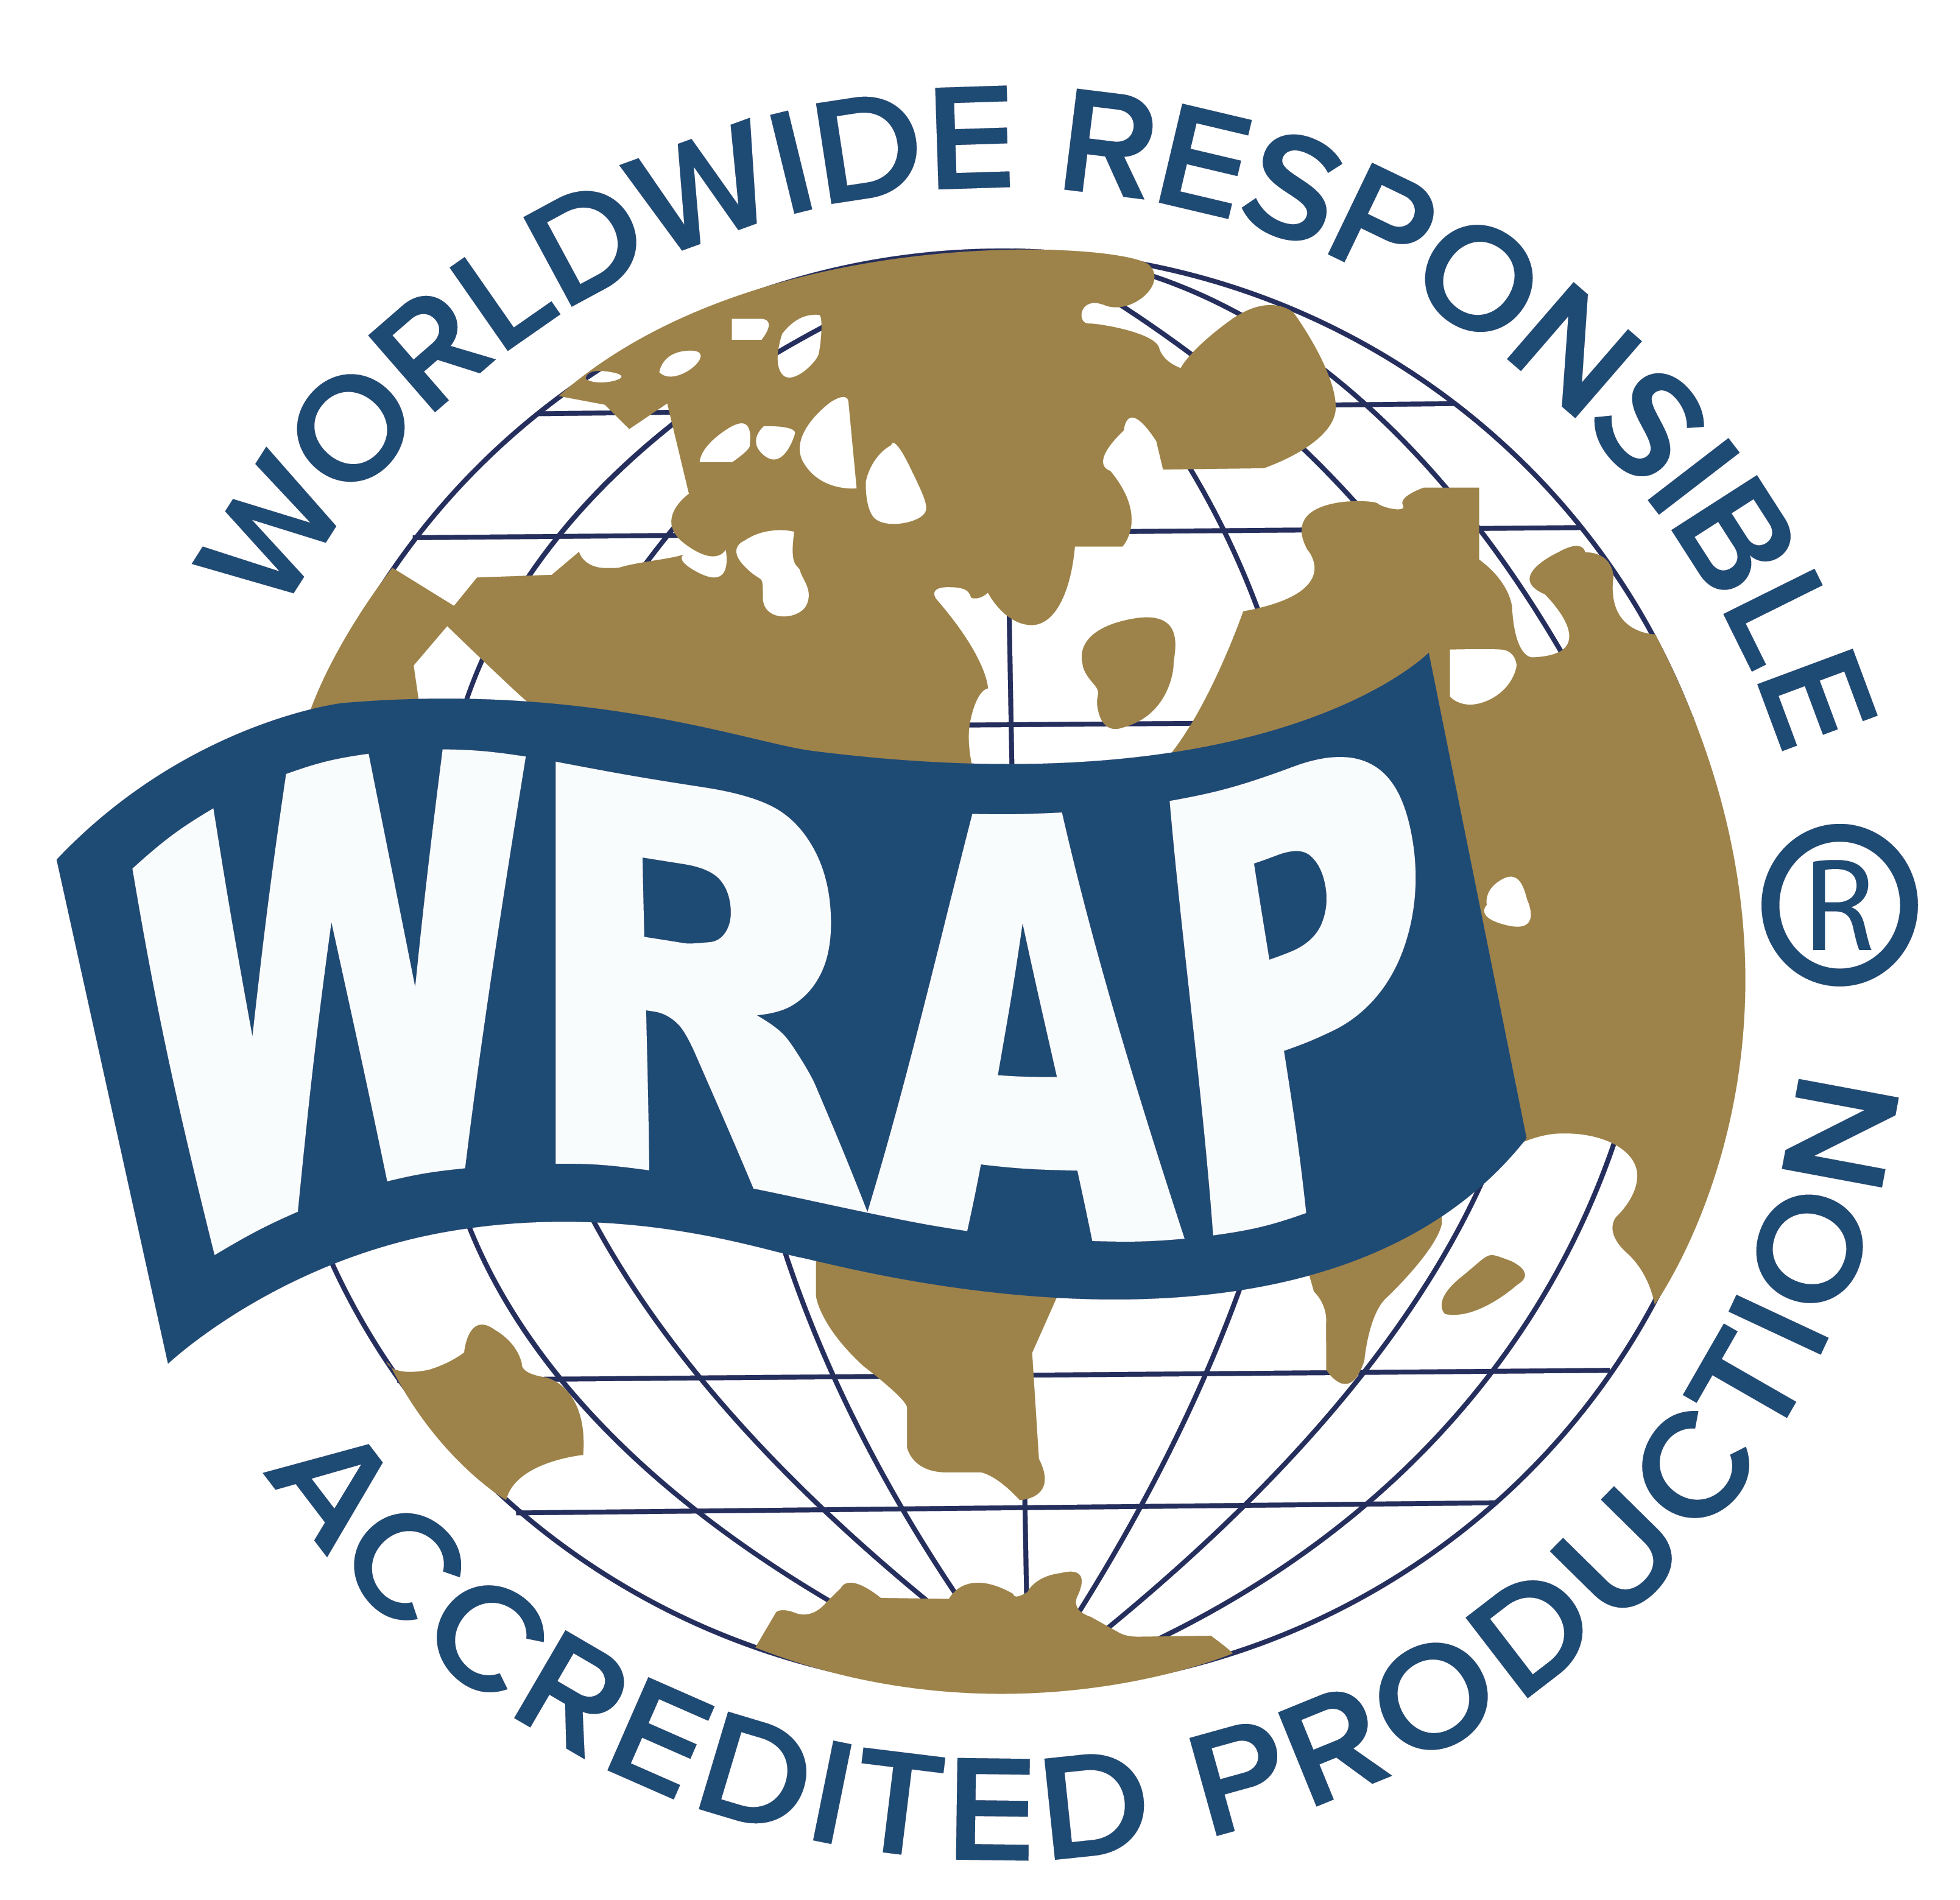 Logo des Siegels WRAP (Worldwide Responsible Accredited Production)